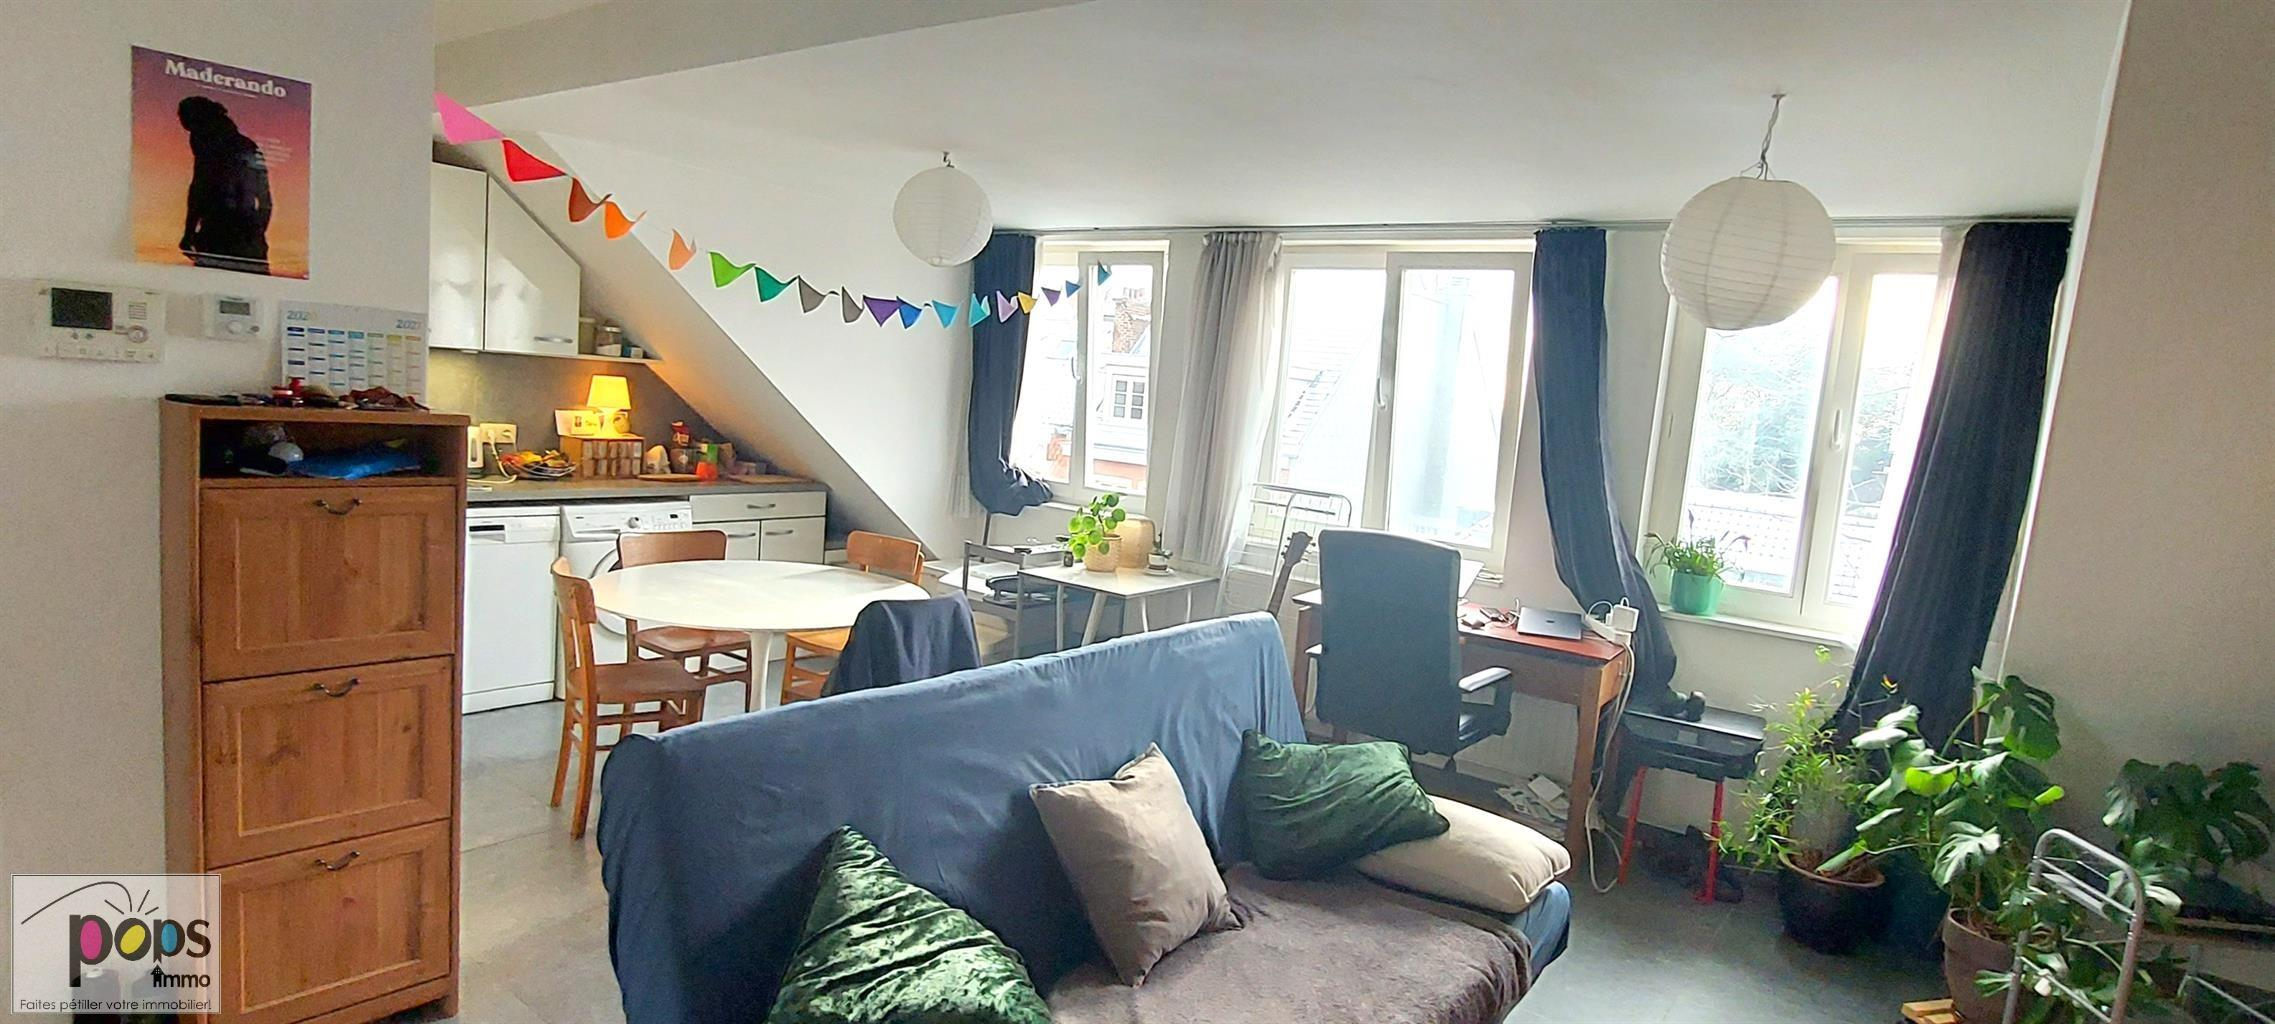 Appartement - Uccle - #4294712-19